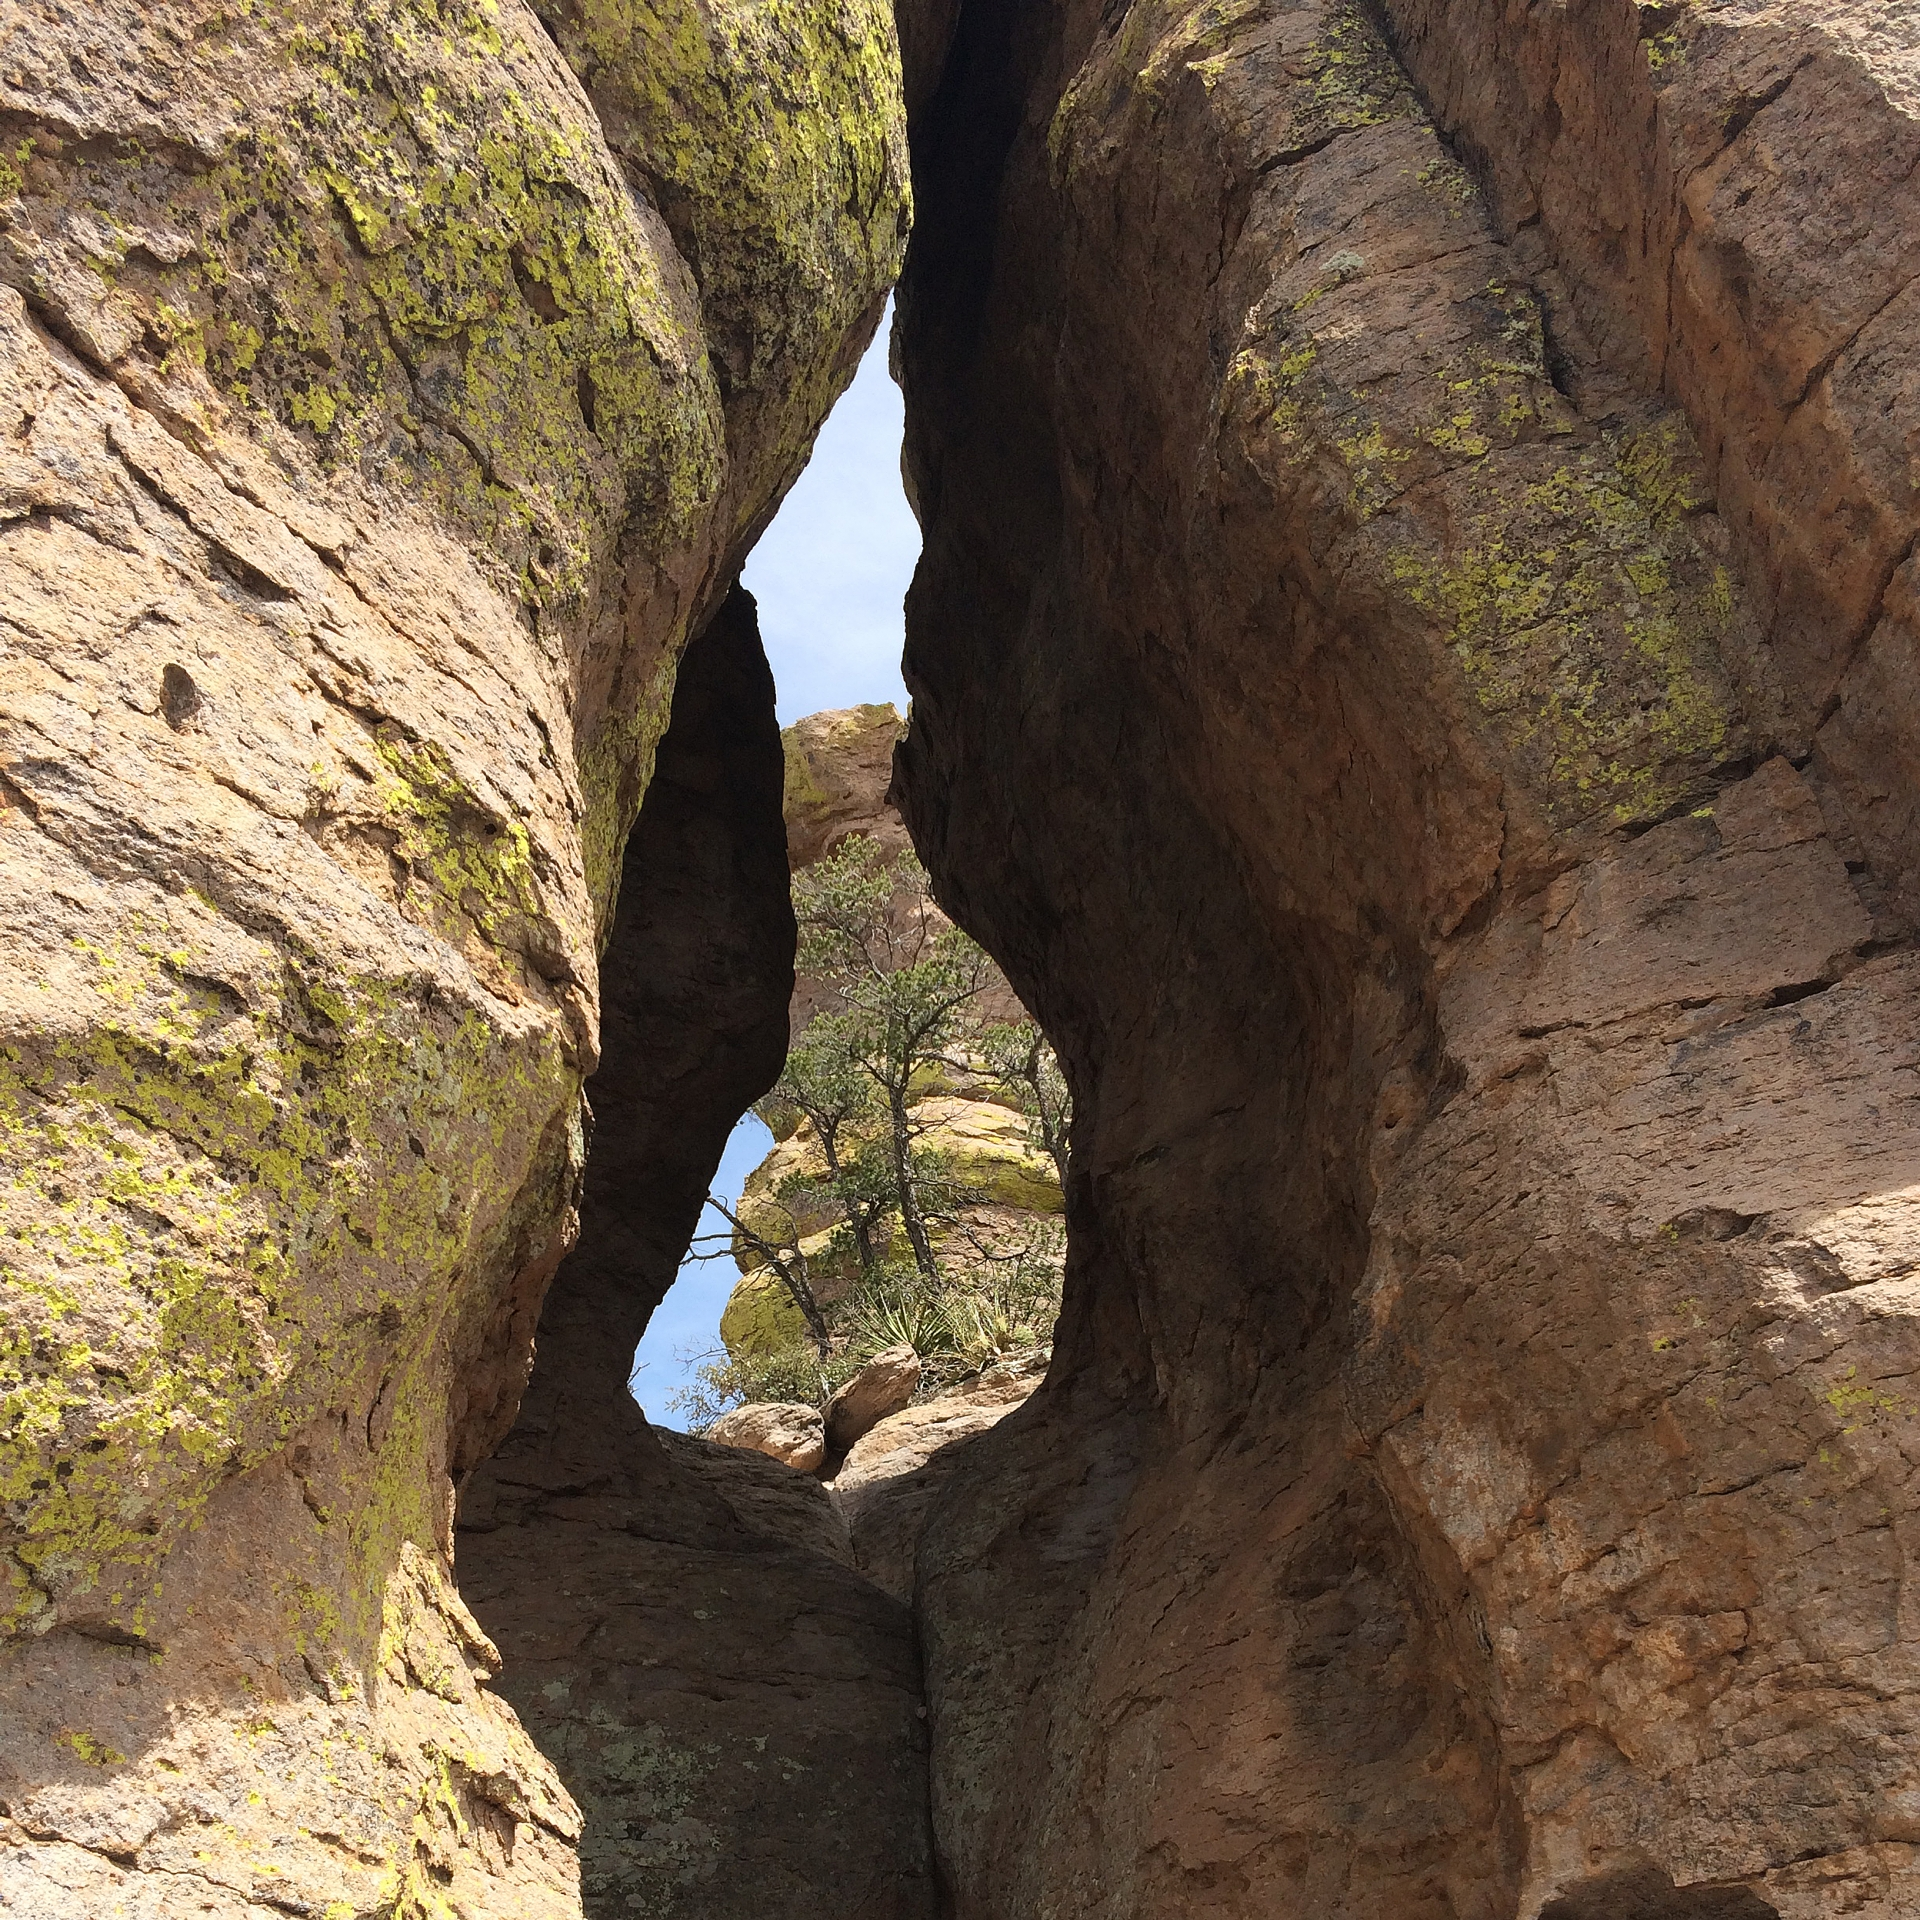 Trees growing out of rocks and are framed by a peek through a crevice